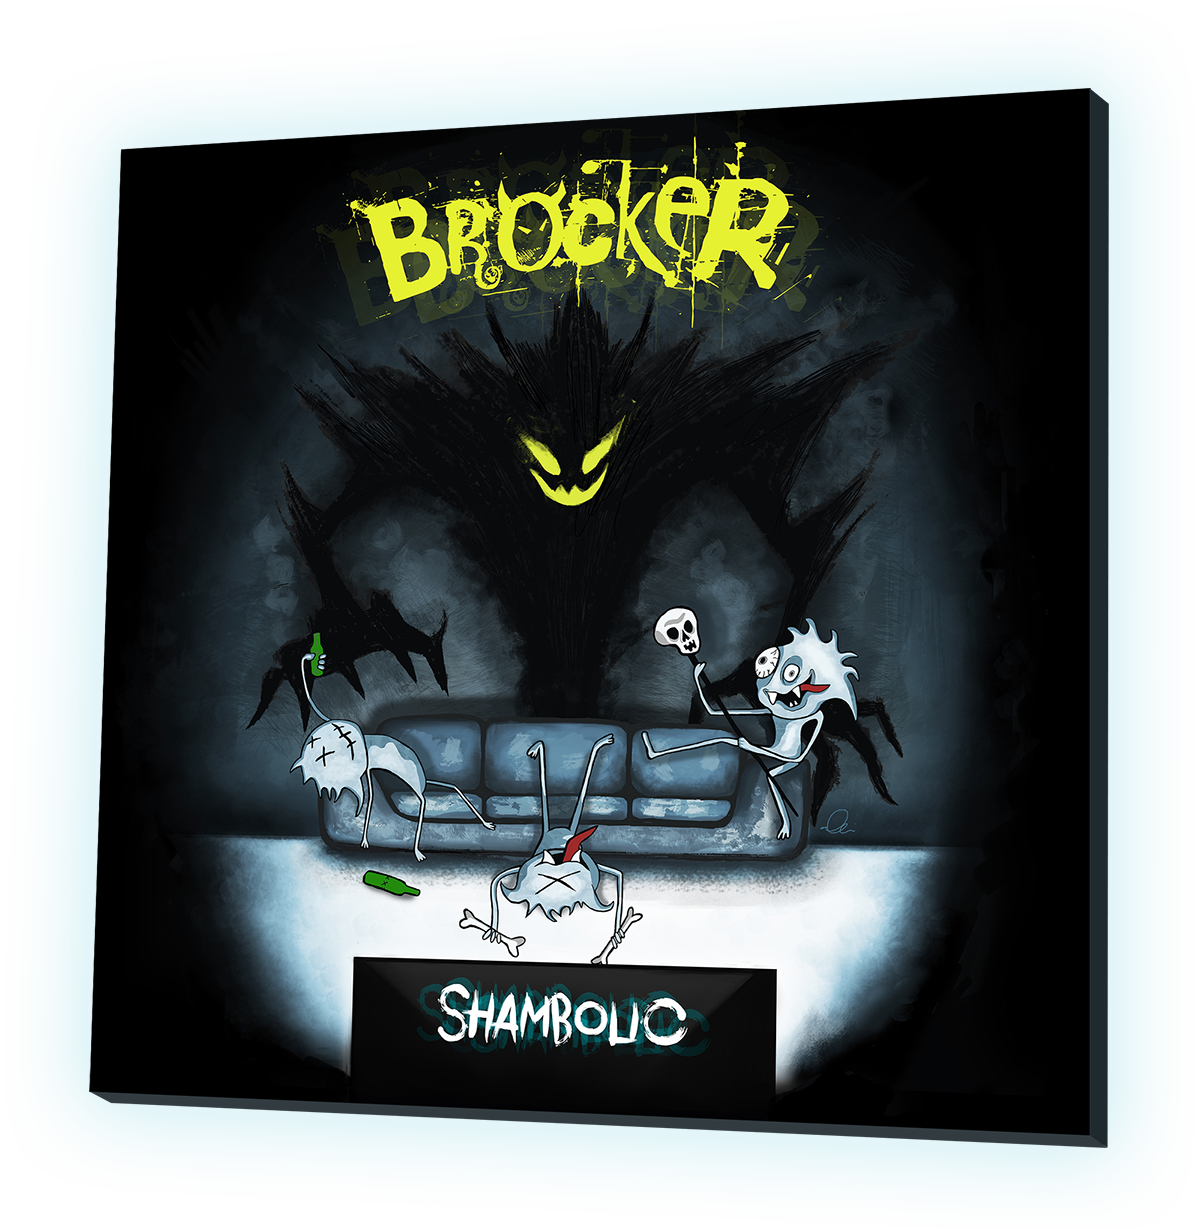 BROCKER - Shambolic